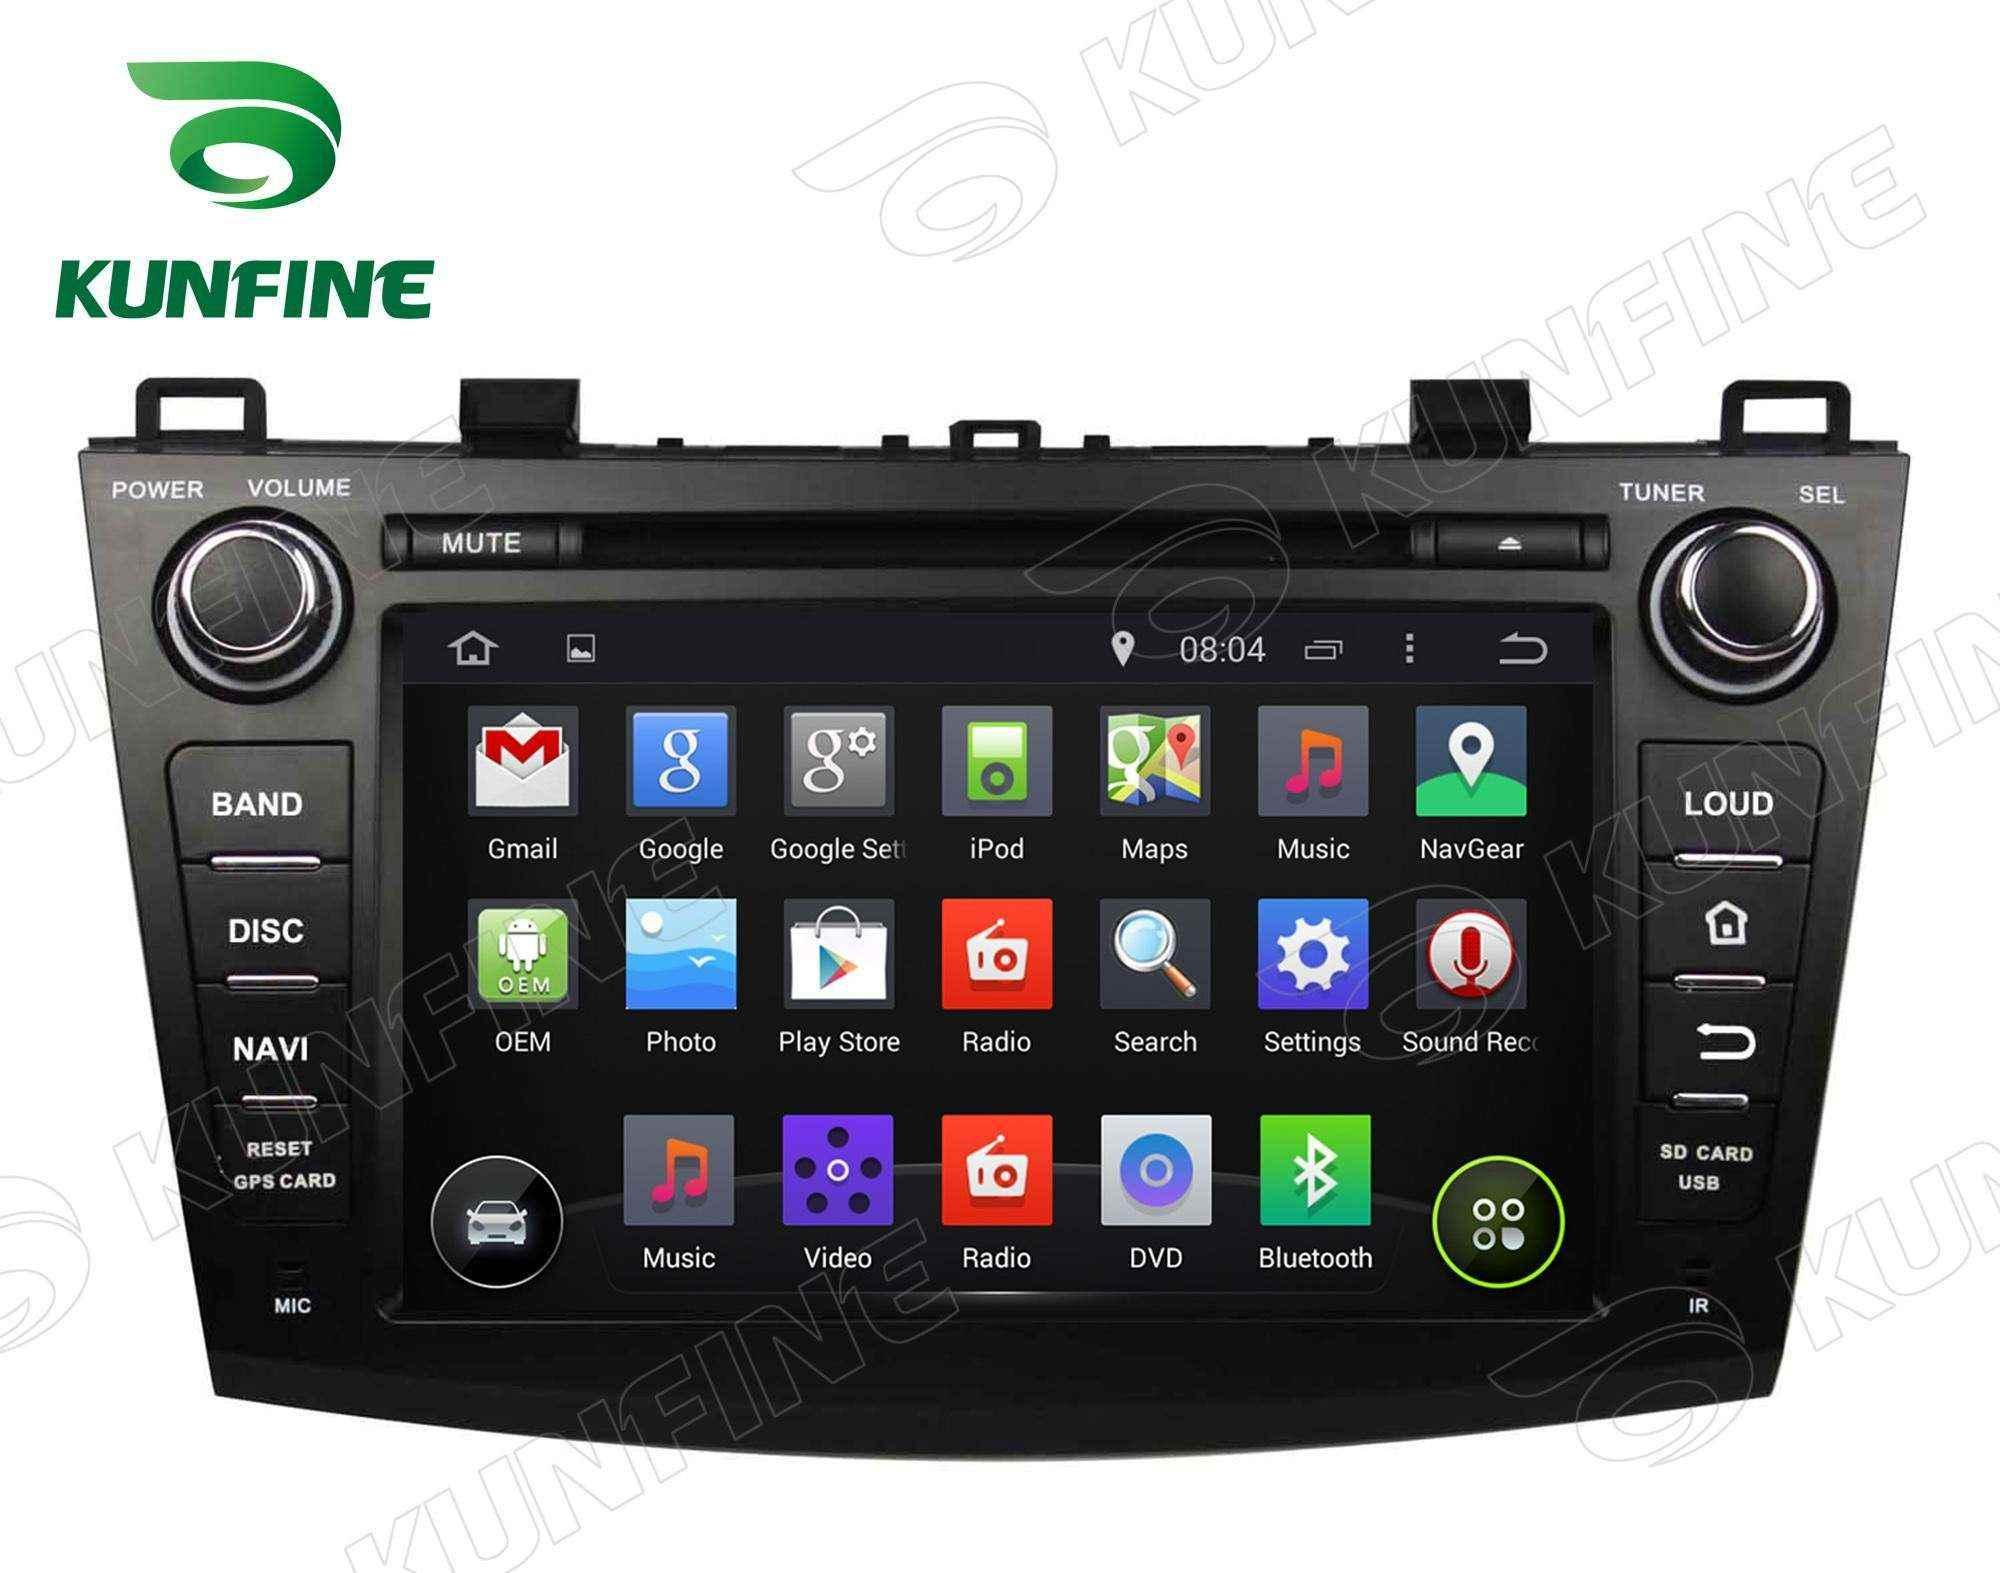 Quad Core Android 5.1 Car DVD GPS Navigation Player for Mazda 3 2009-2012 Radio Bluetooth steering wheel control 8 inch Screen 1024*600